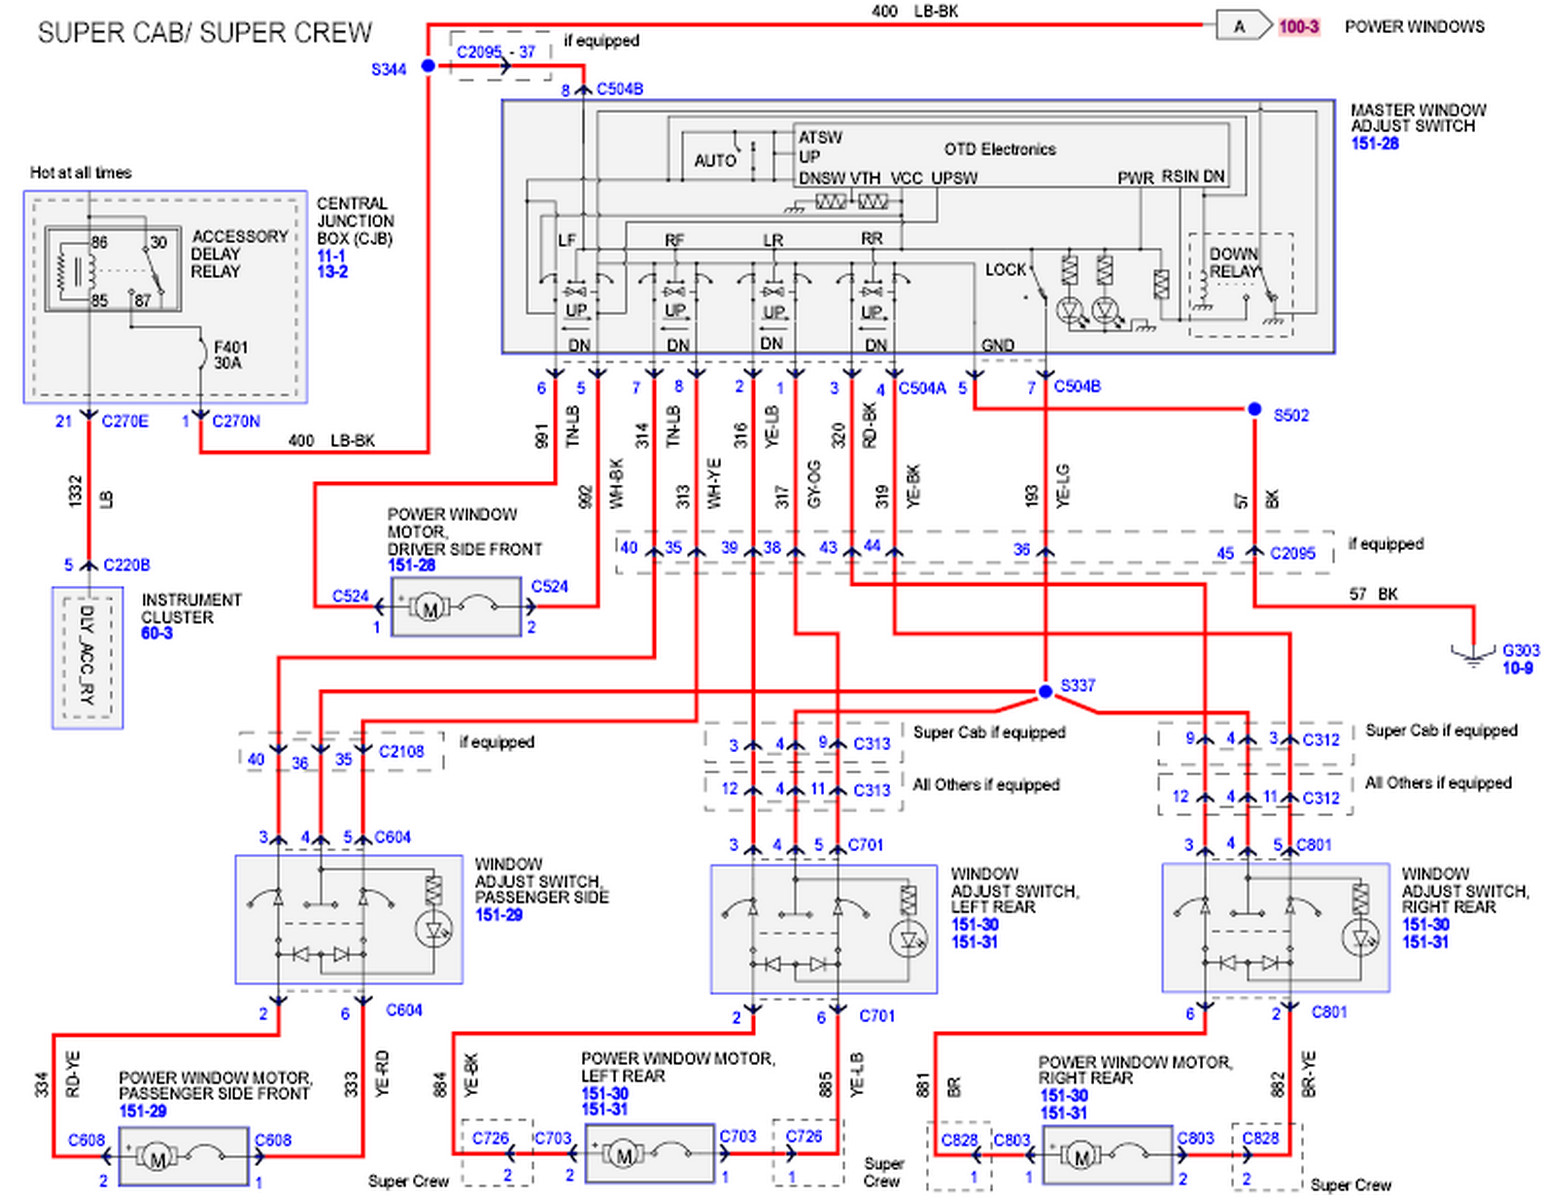 1998 Ford F 150 Fuse Diagram In Addition Ford Contour Radio Wiring